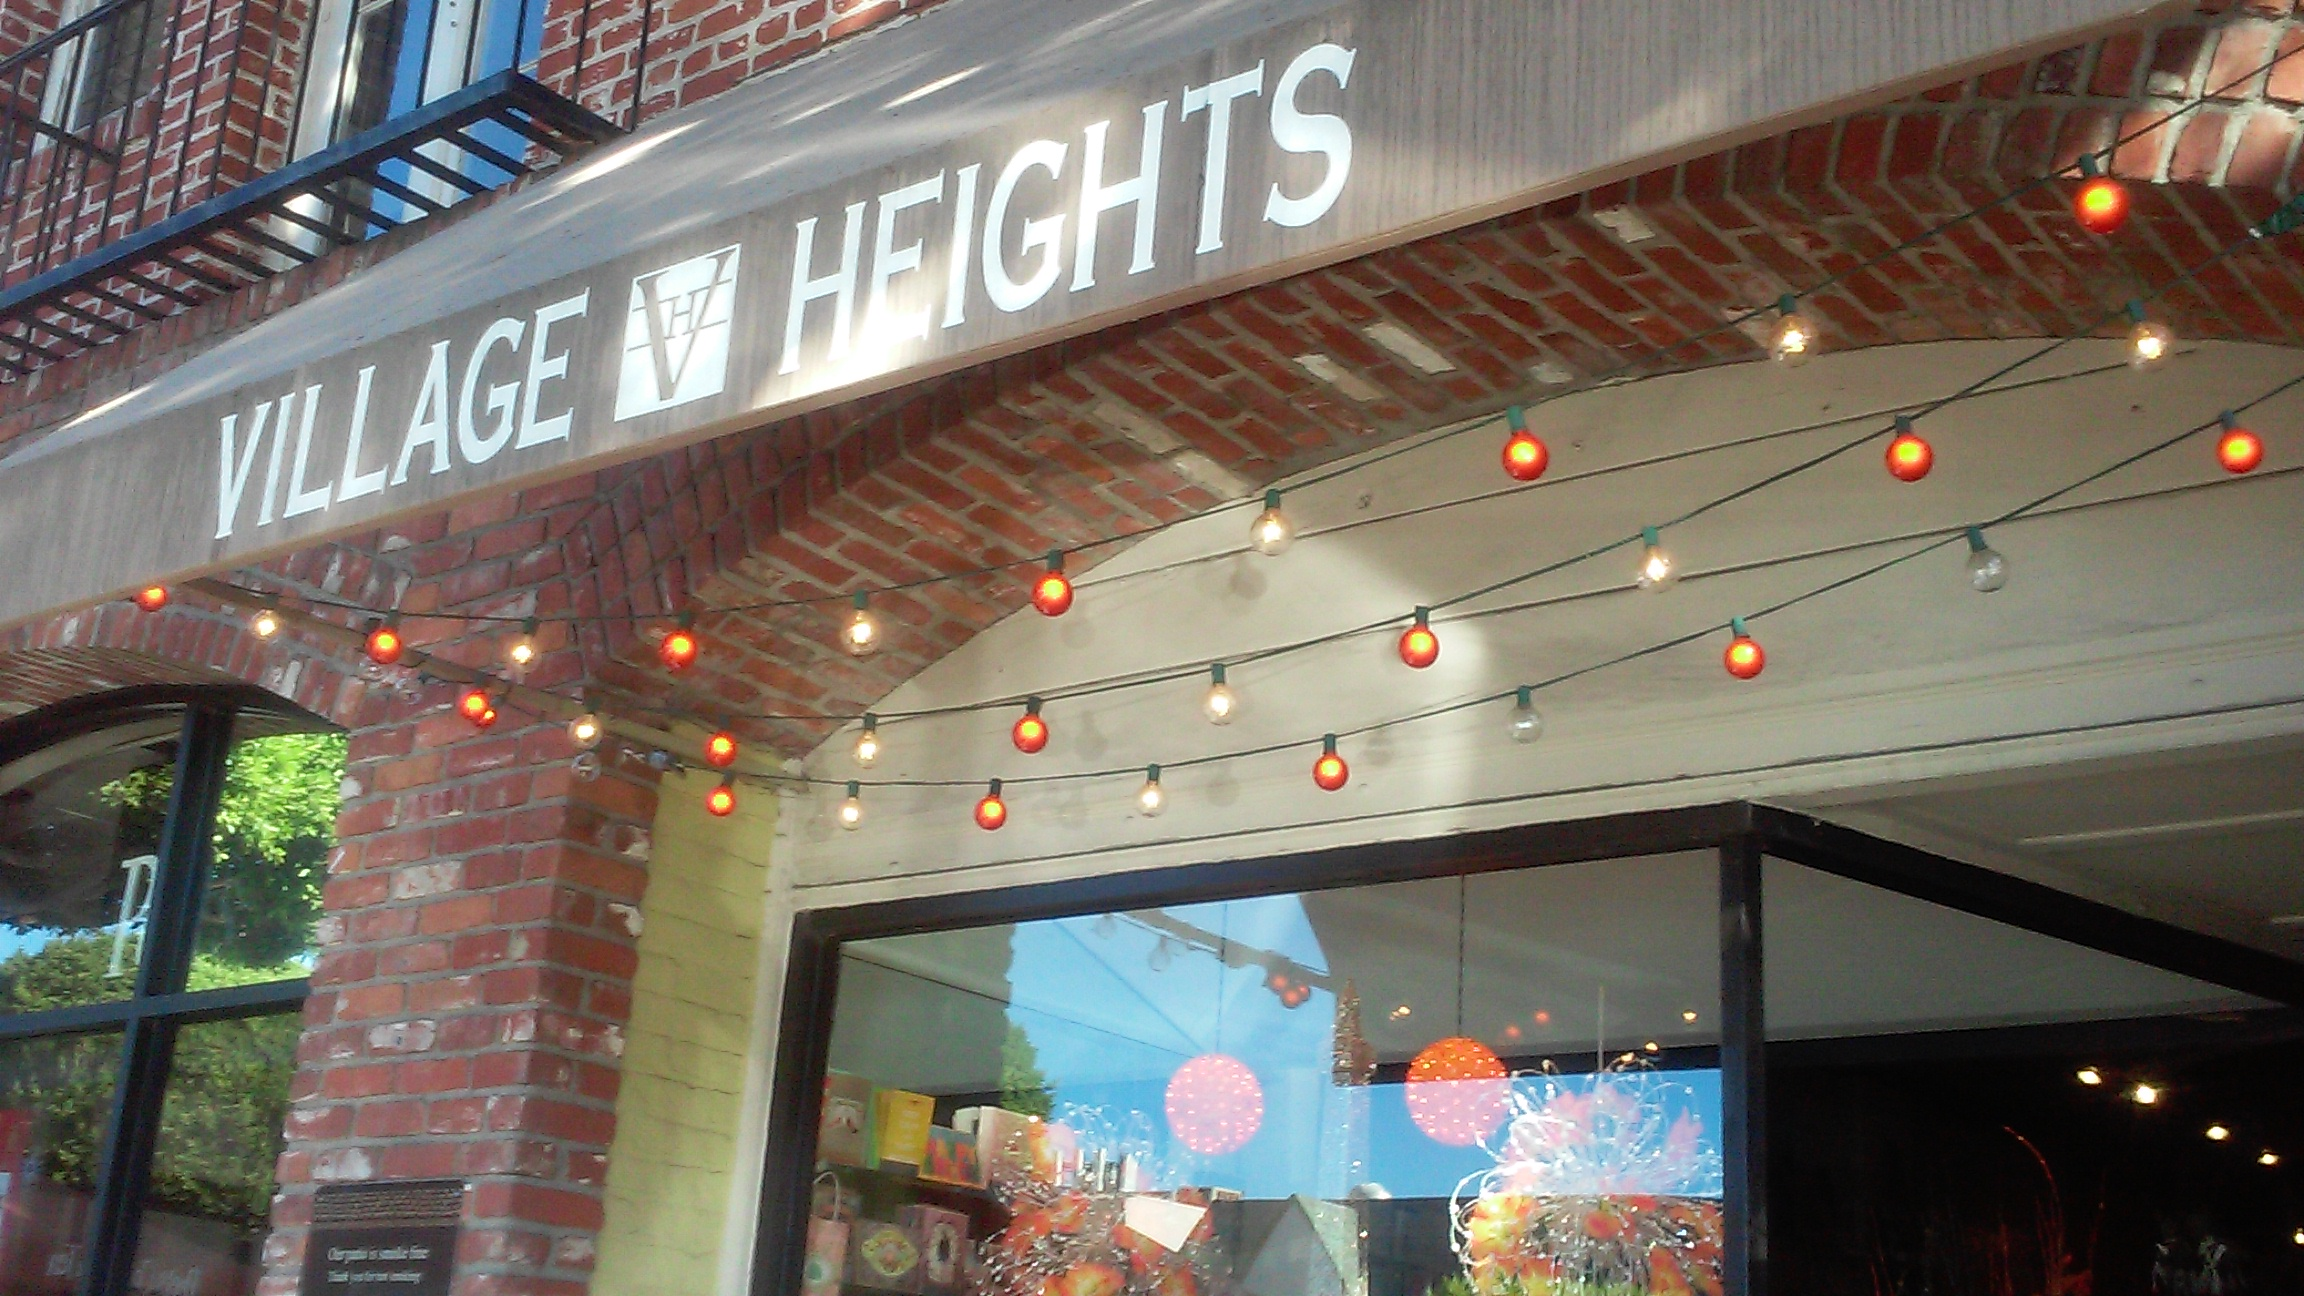 Village Heights shop at Larchmont Village. Courtesy of Leanna Lin.